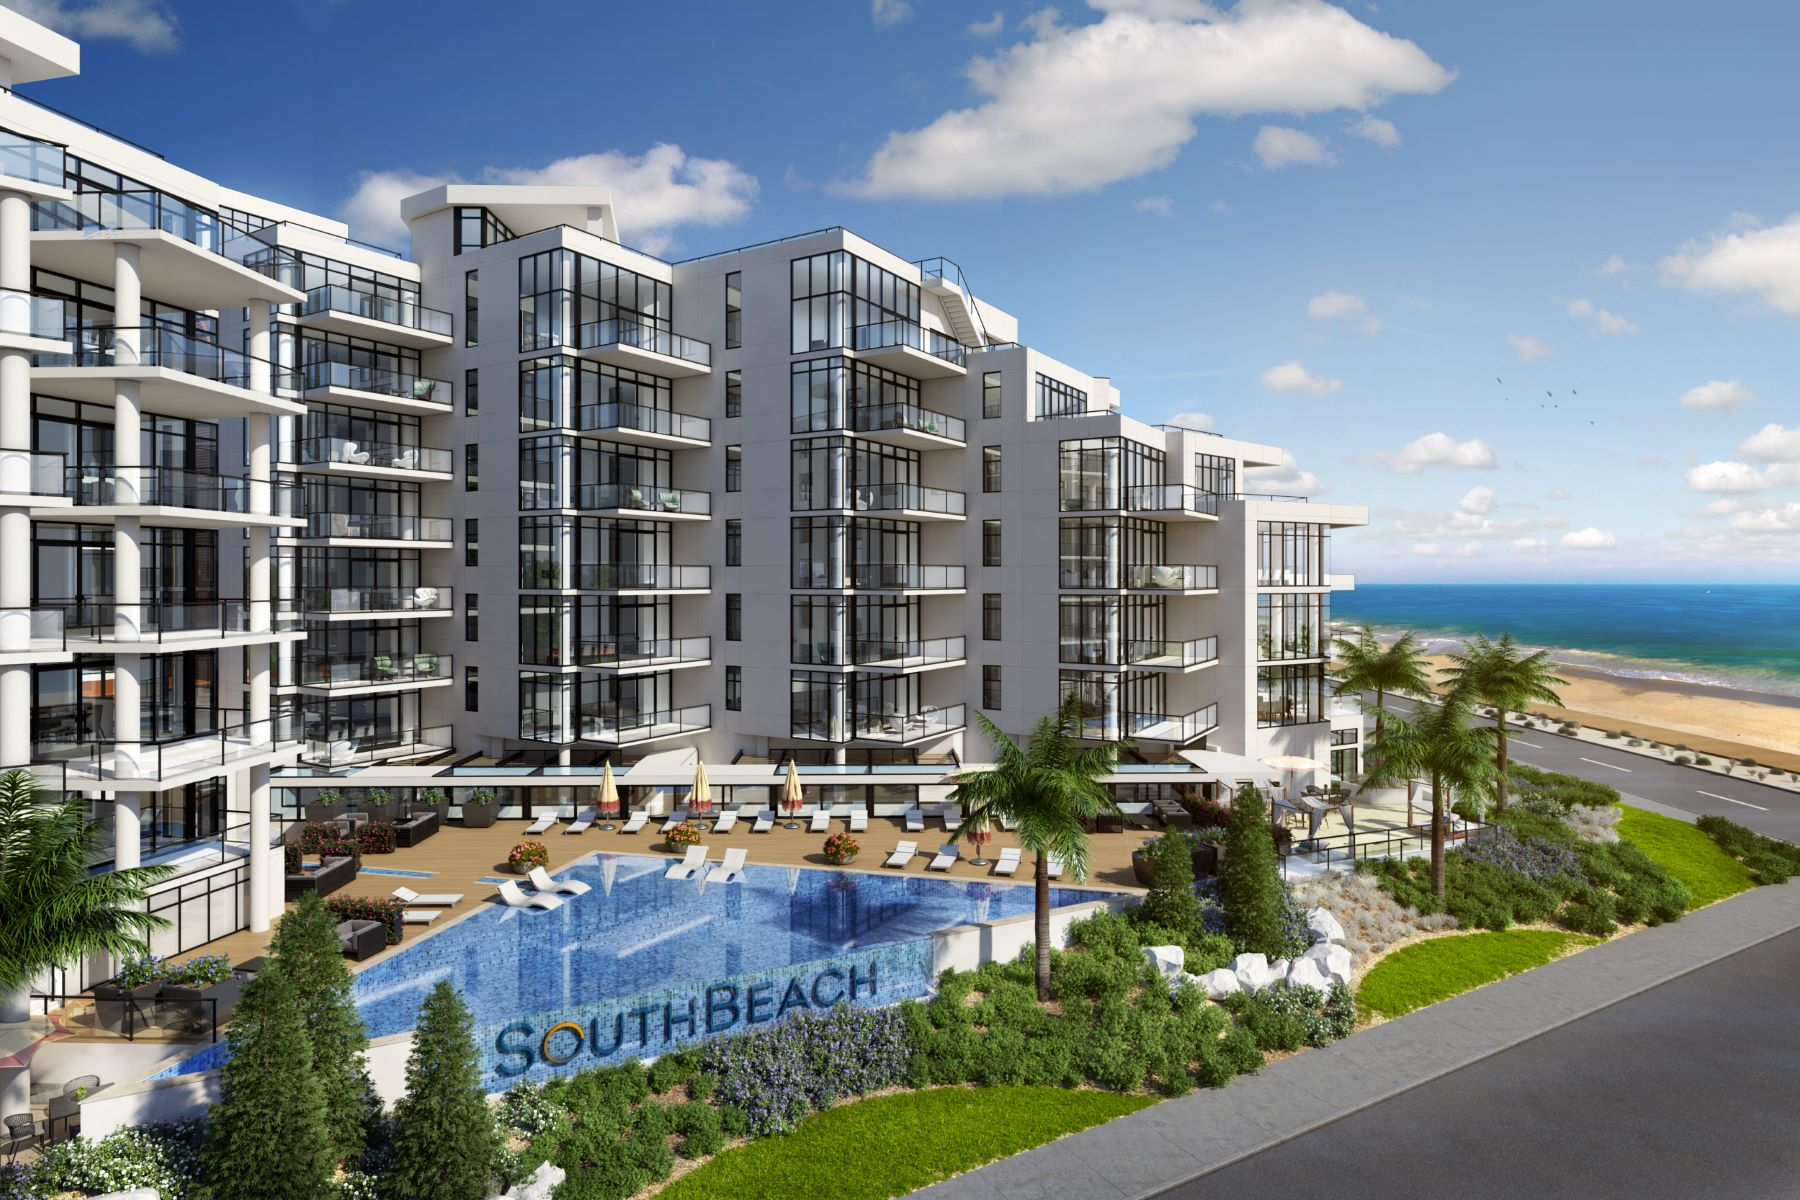 Condominiums for Sale at South Beach at Long Branch 350 Ocean Avenue 603 Long Branch, New Jersey 07740 United States